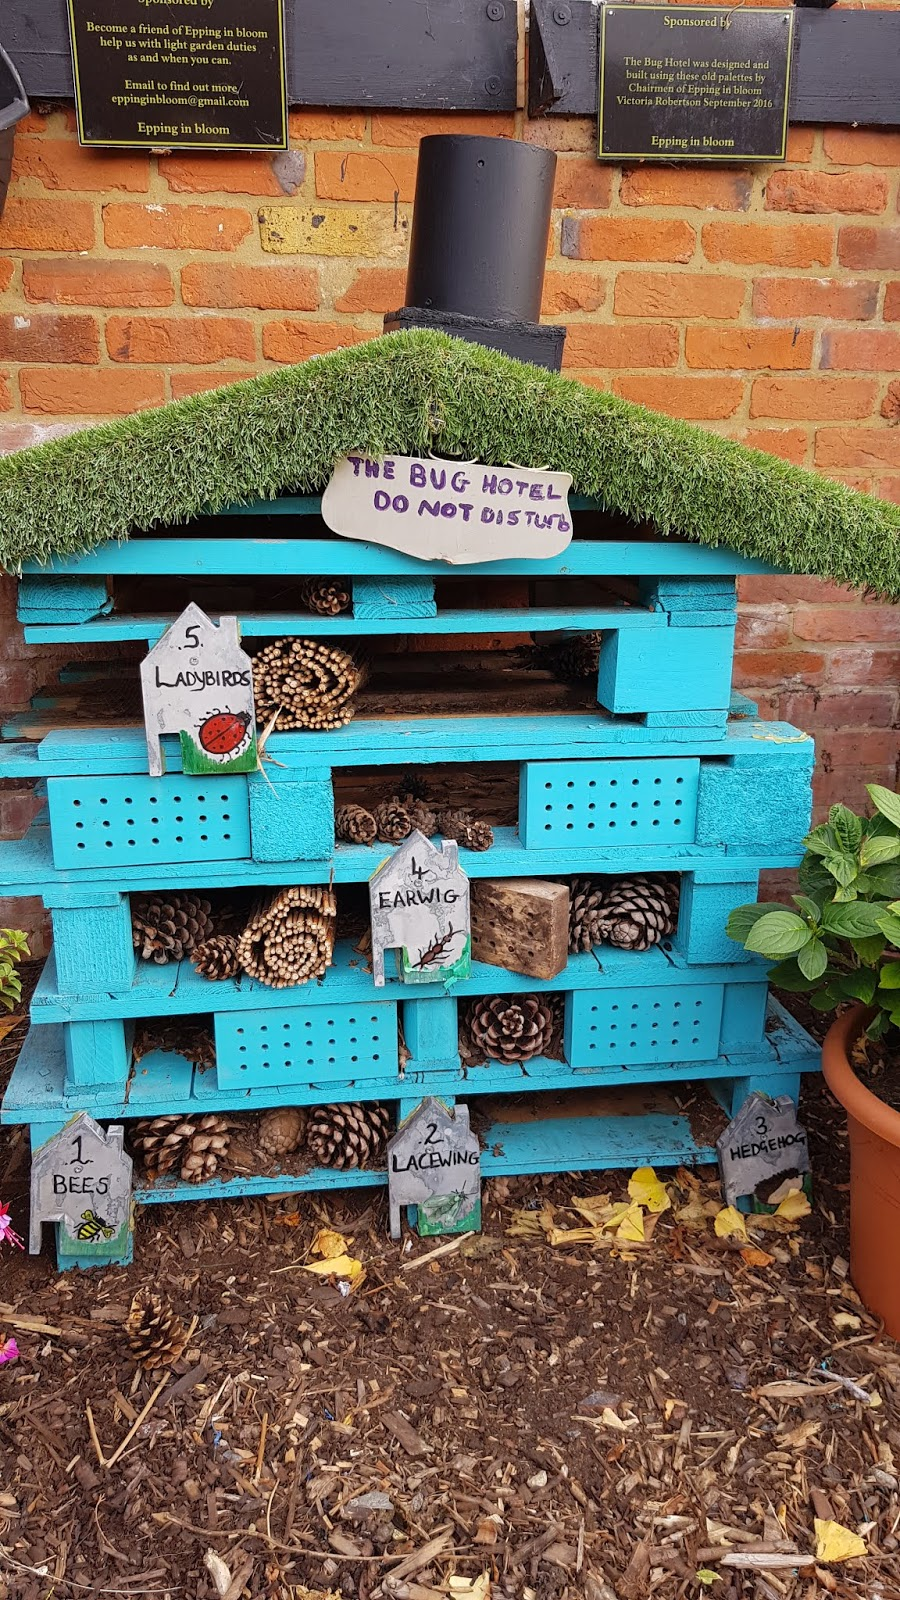 Children's bug hotel at Epping community garden in Essex, as featured in Is This Mutton's Sentence a Day for October.